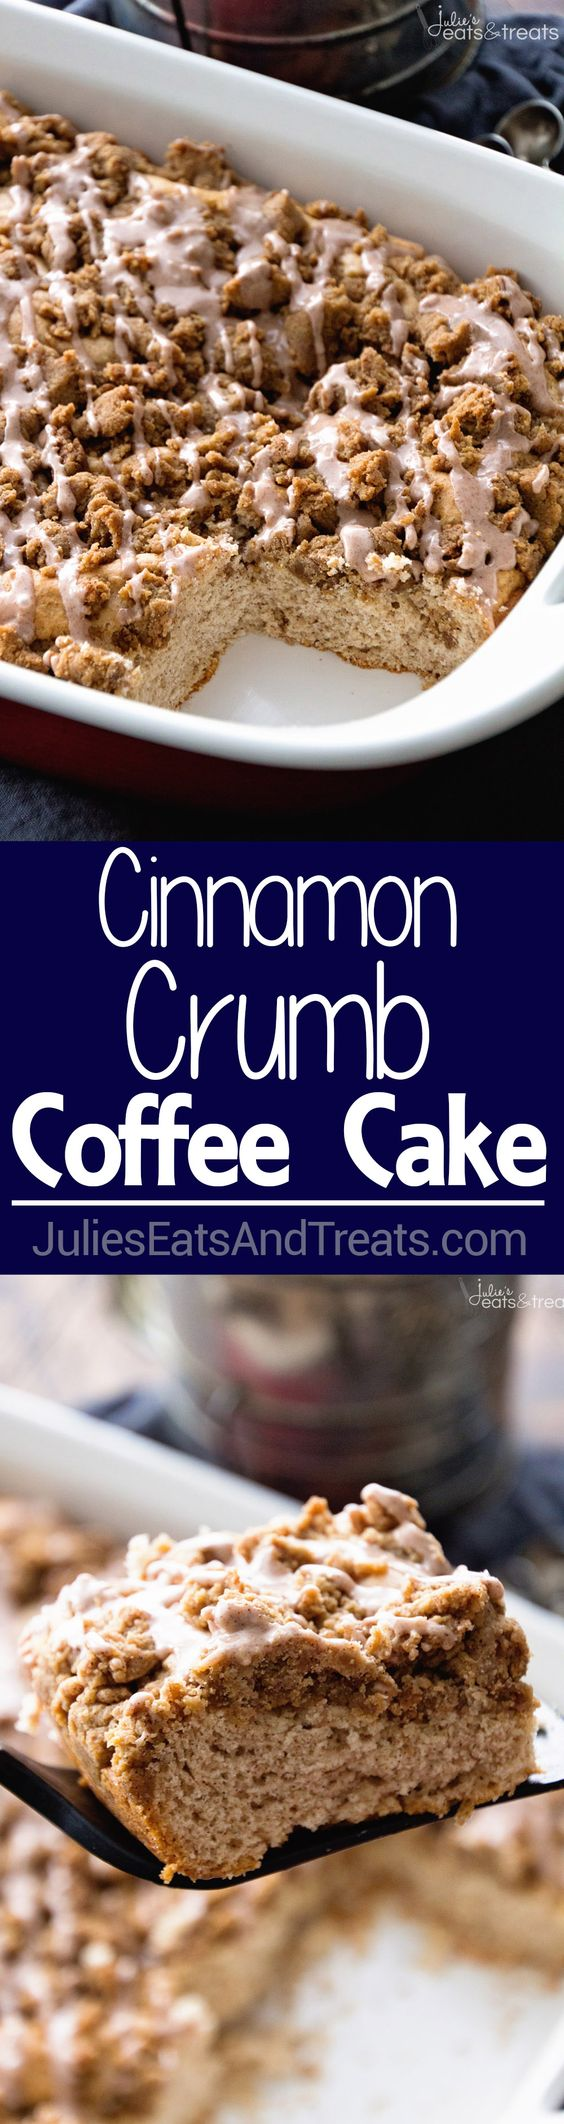 Crumb coffee cakes, Coffee cake and Cake recipes on Pinterest